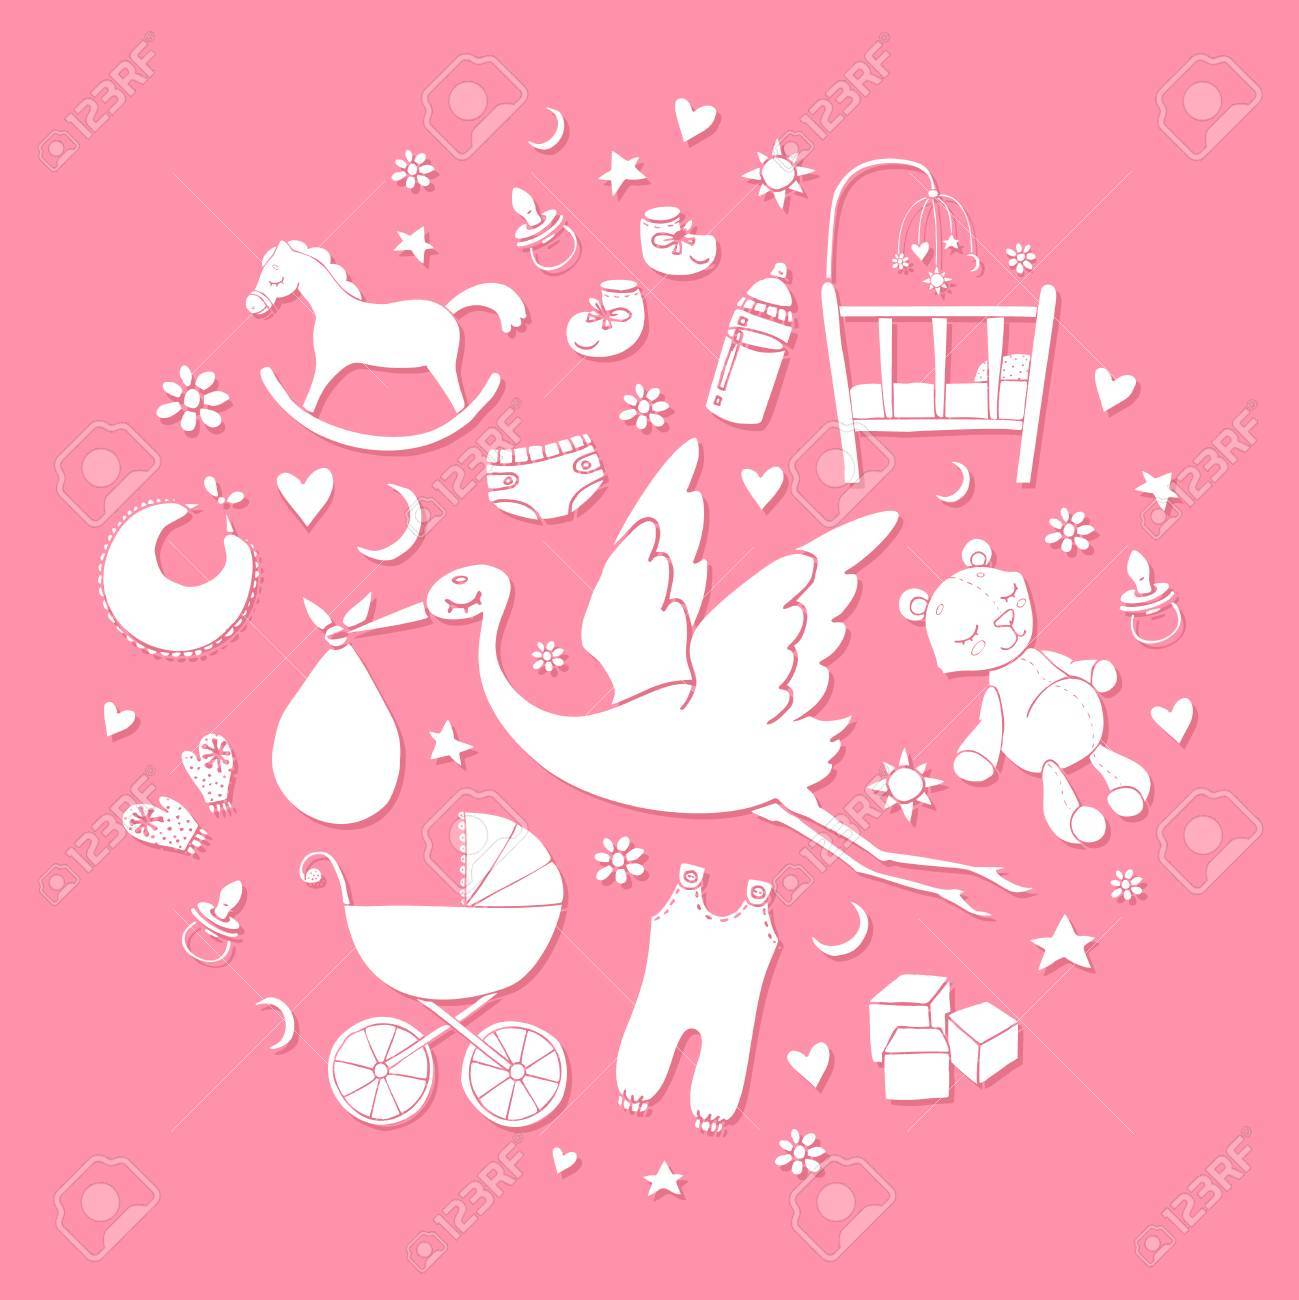 958e95ba9 Set Of Hand Drawn Elements. Baby Girl Stuff. Collection Of Vector ...